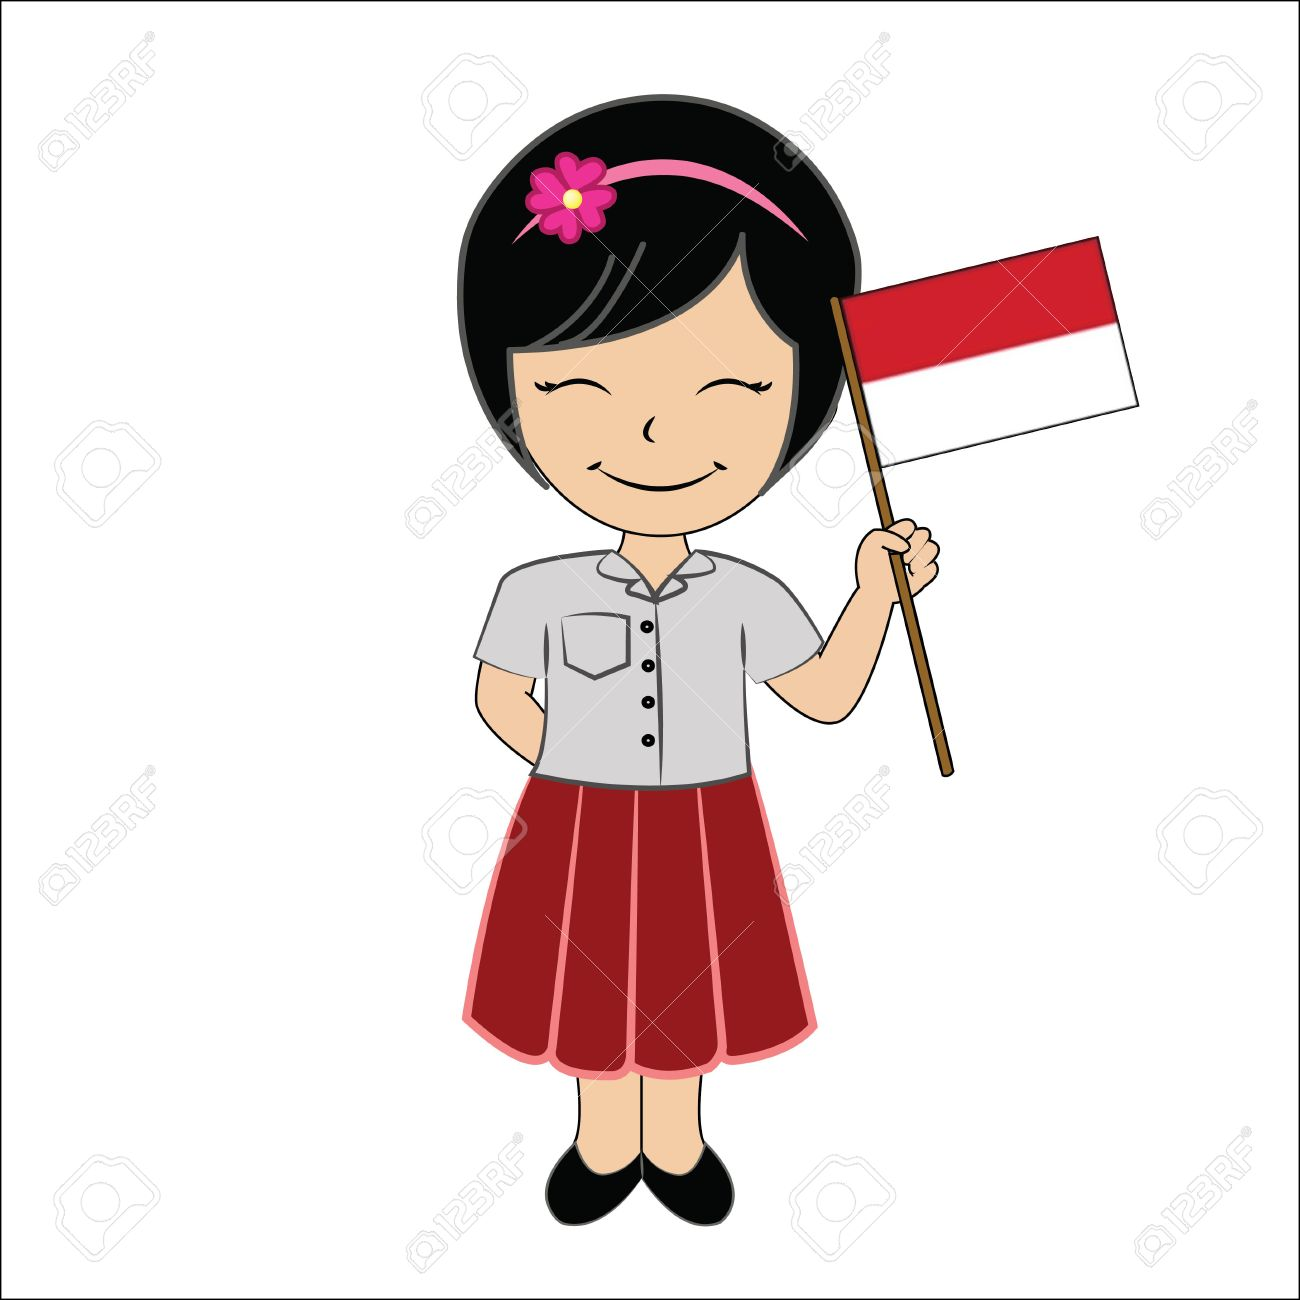 hight resolution of cartoon girl student asean indonesia stock photo 33330176